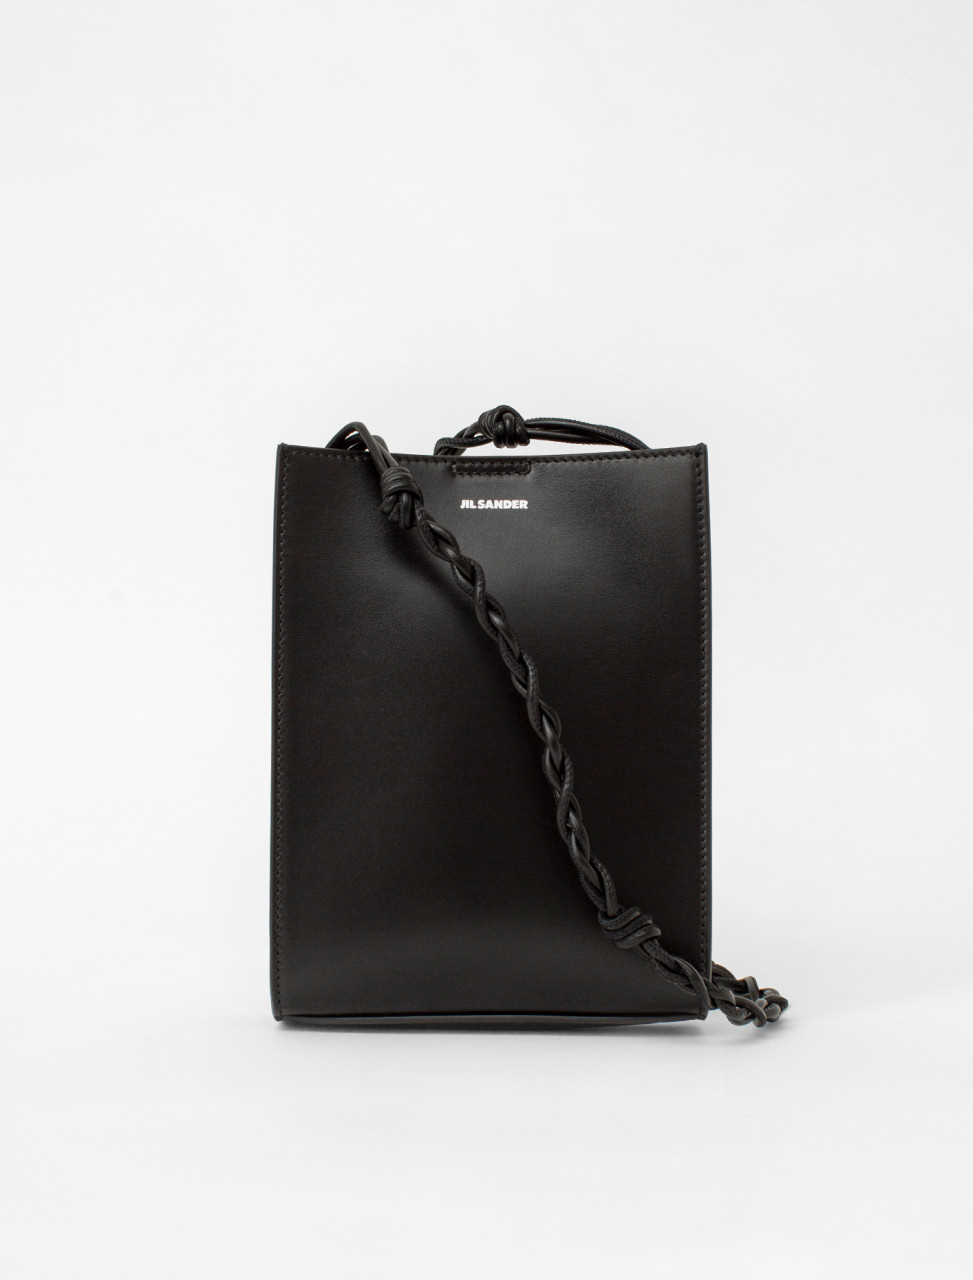 Tangle Small Bag